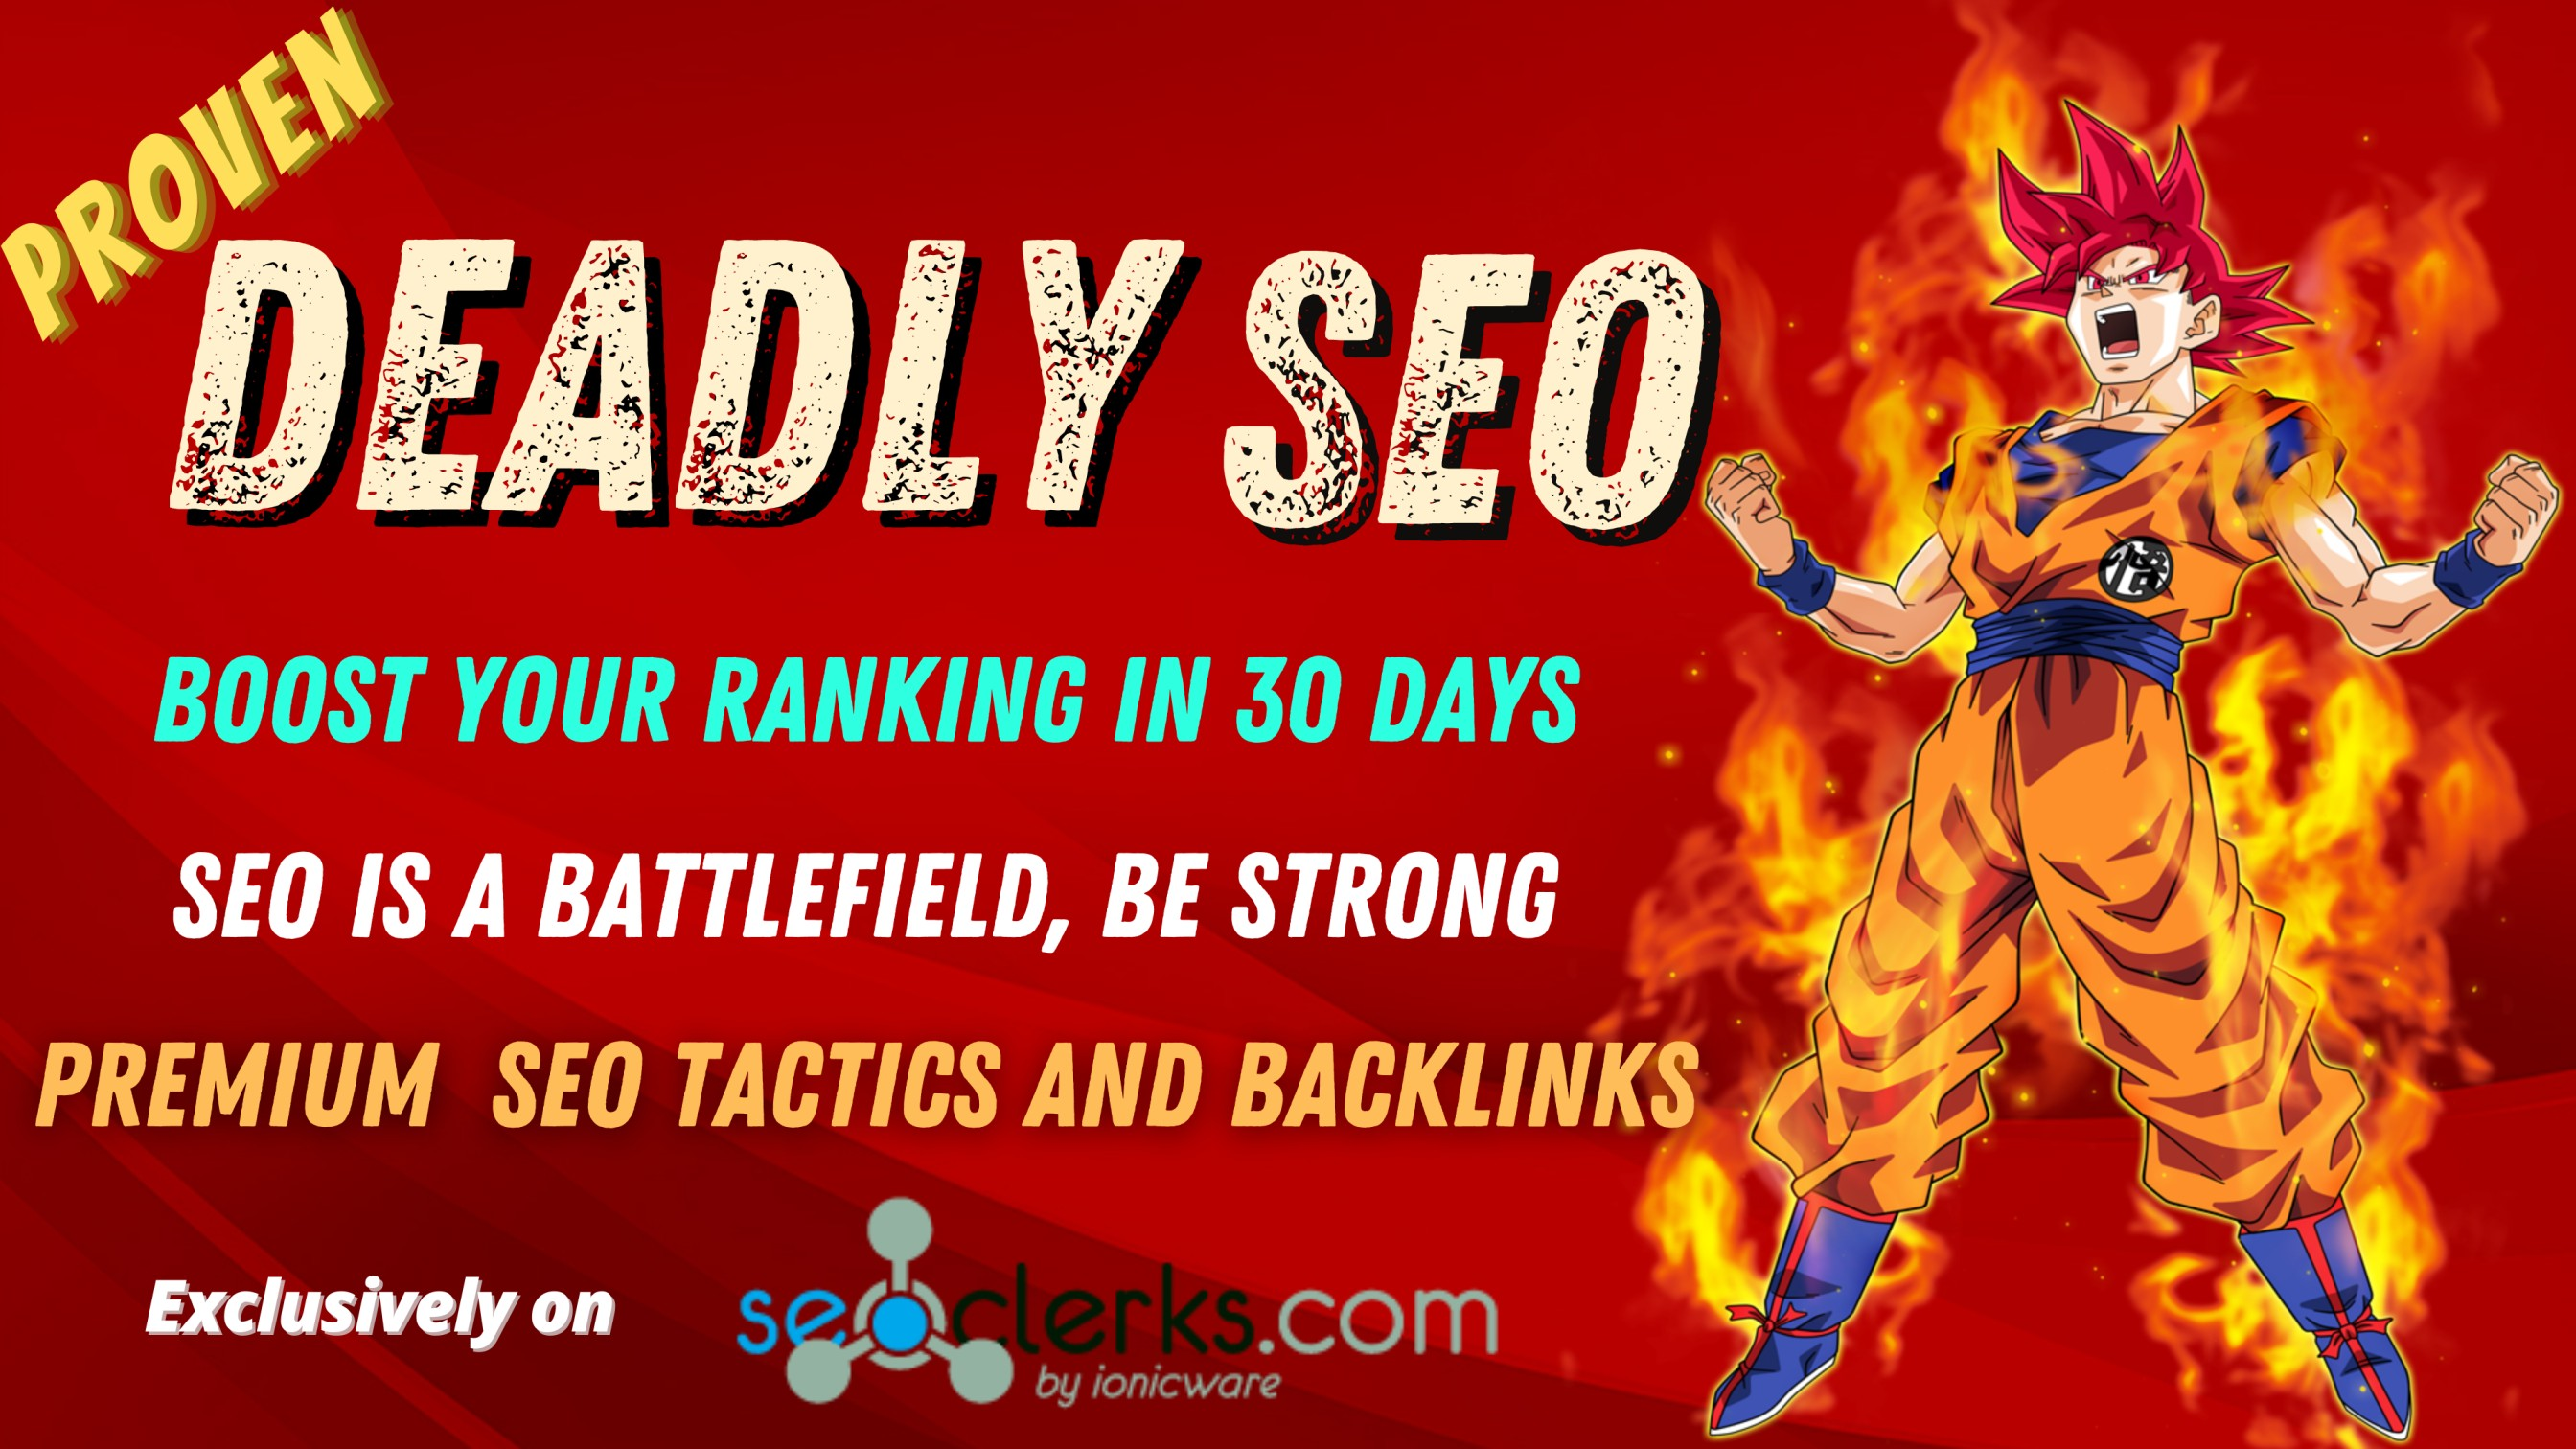 Deadly Seo - Boost your ranking in 30 days - Premium backlinks for Immense results- DA upto90